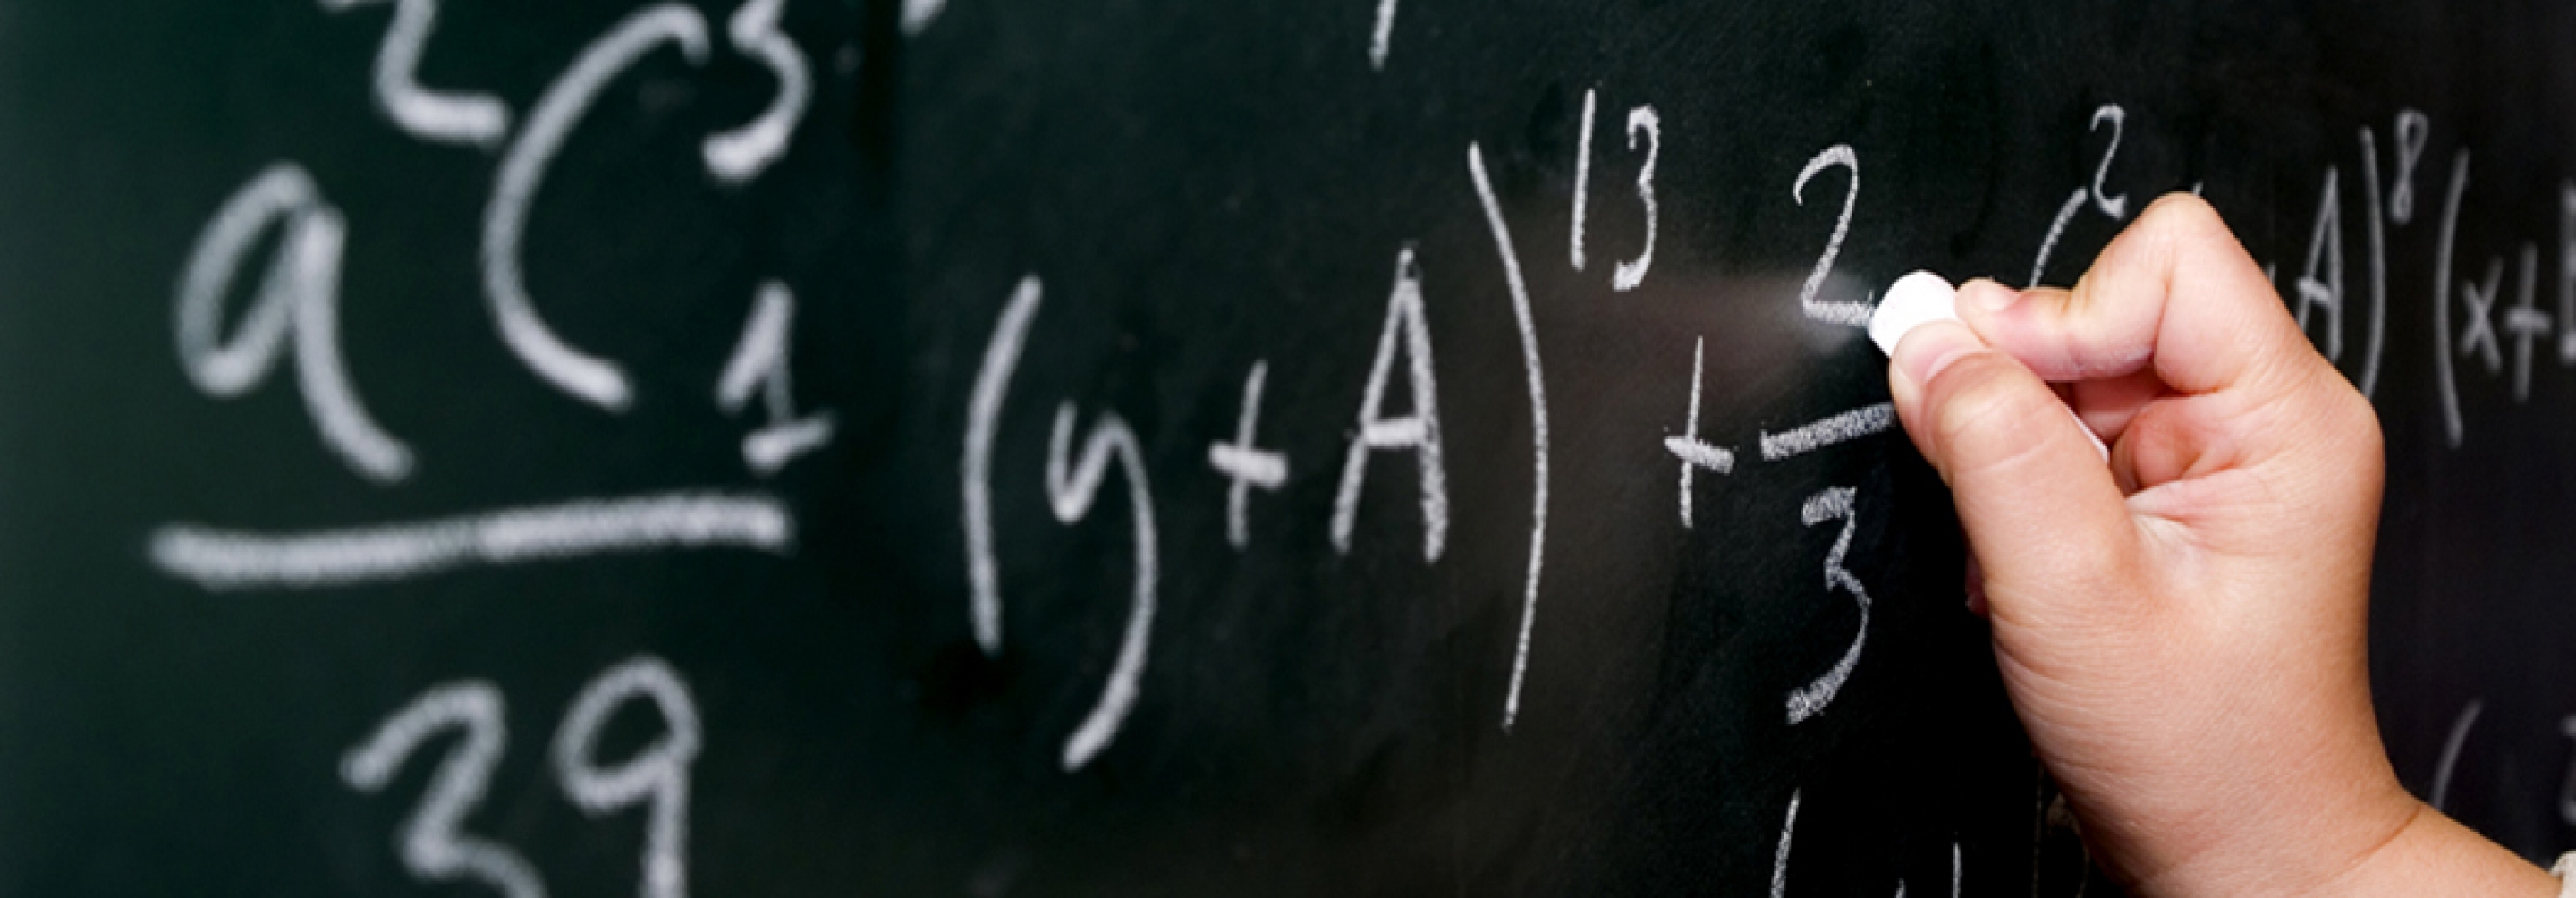 Picture of a hand writing equations on a blackboard